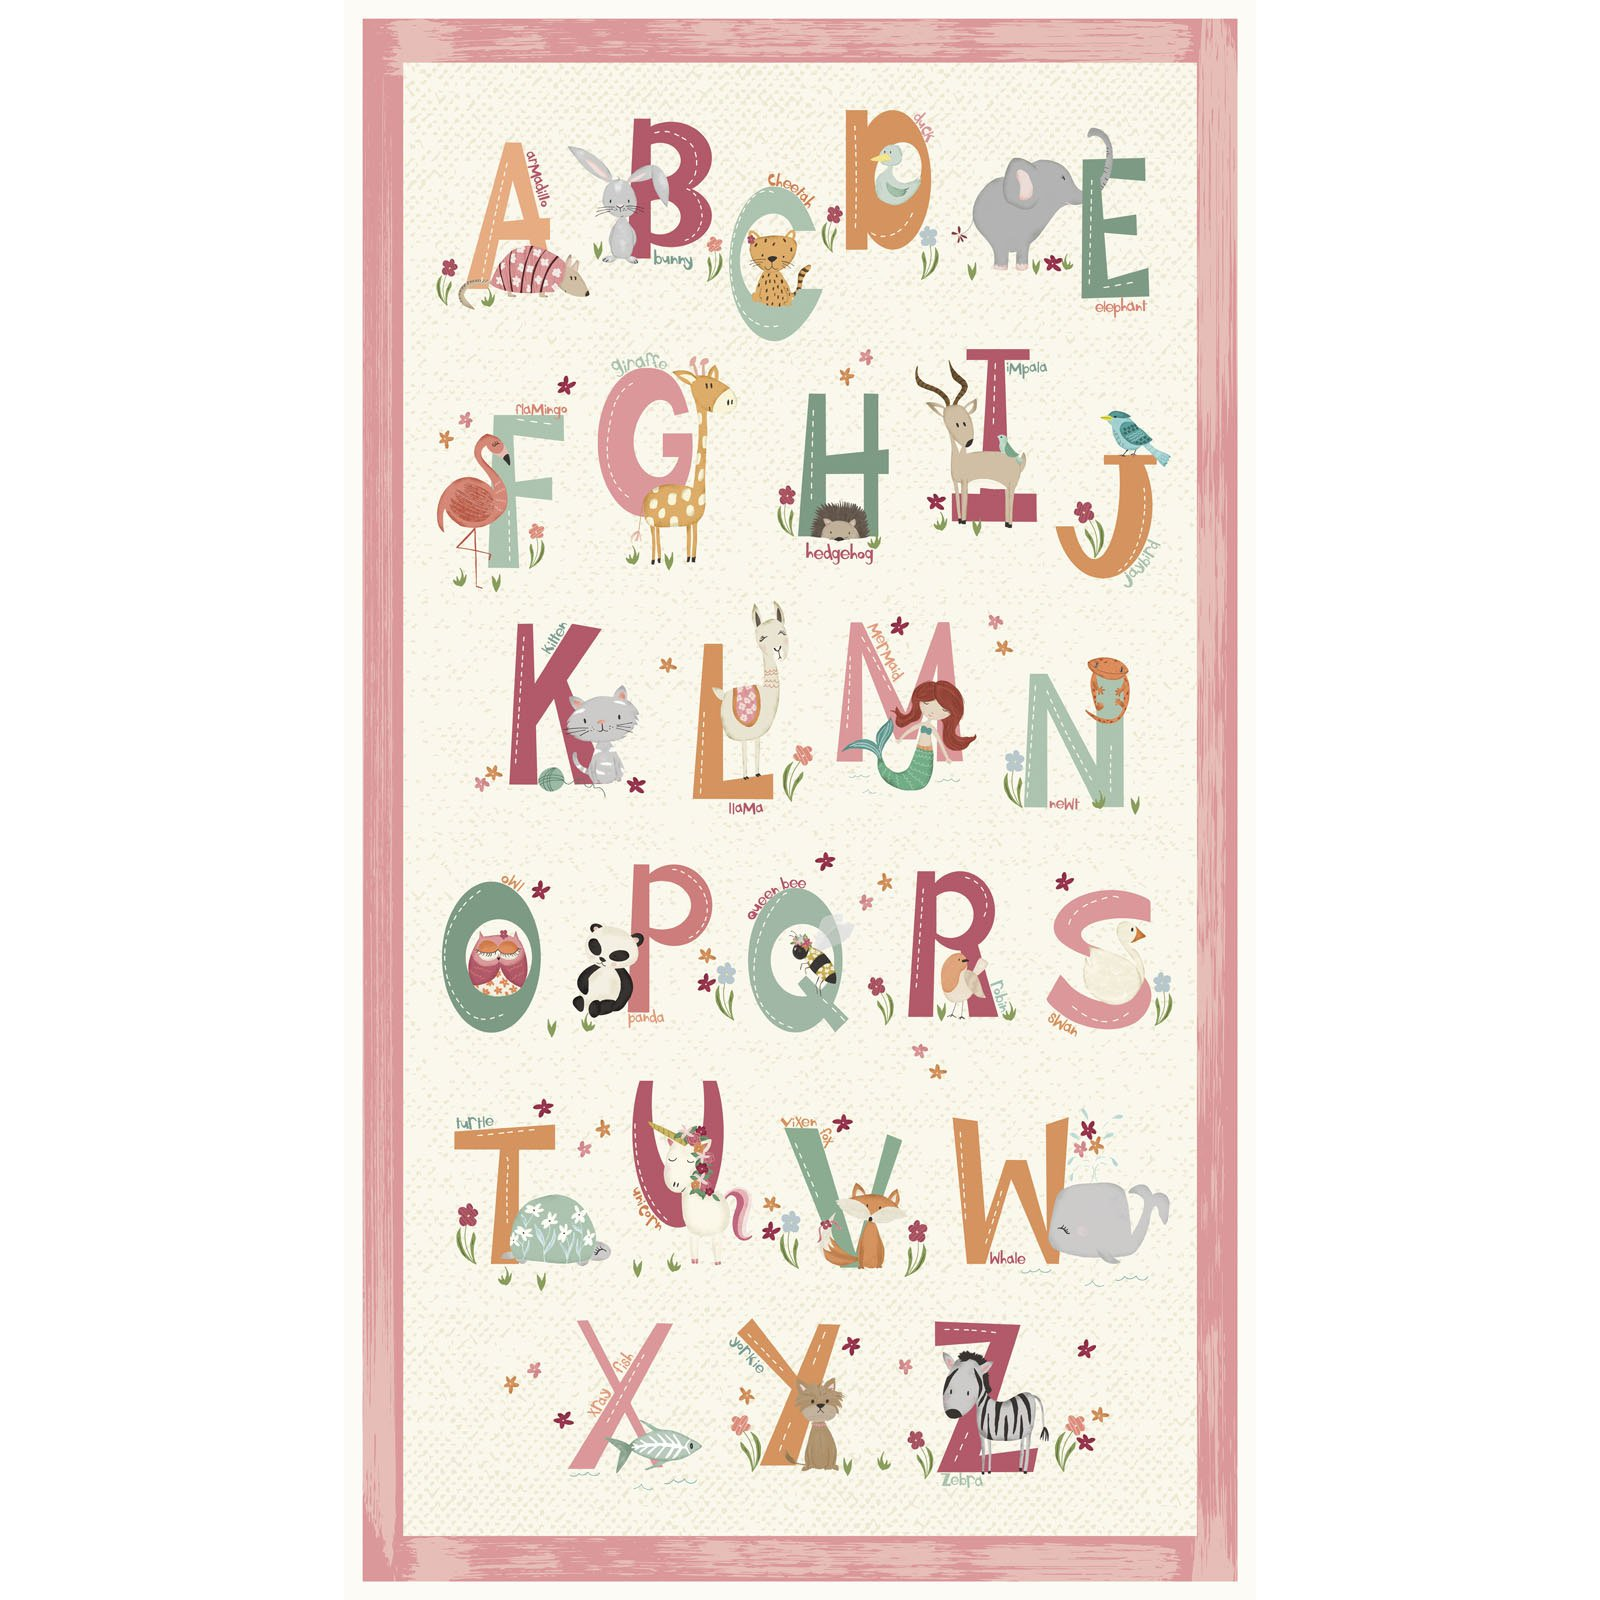 ANIA-4464 PA P - ANIMAL ALPHABET BY DEANNE BEASLEY PANEL PINK 10YD(15 PNLS) - ARRIVING IN MAY 2021